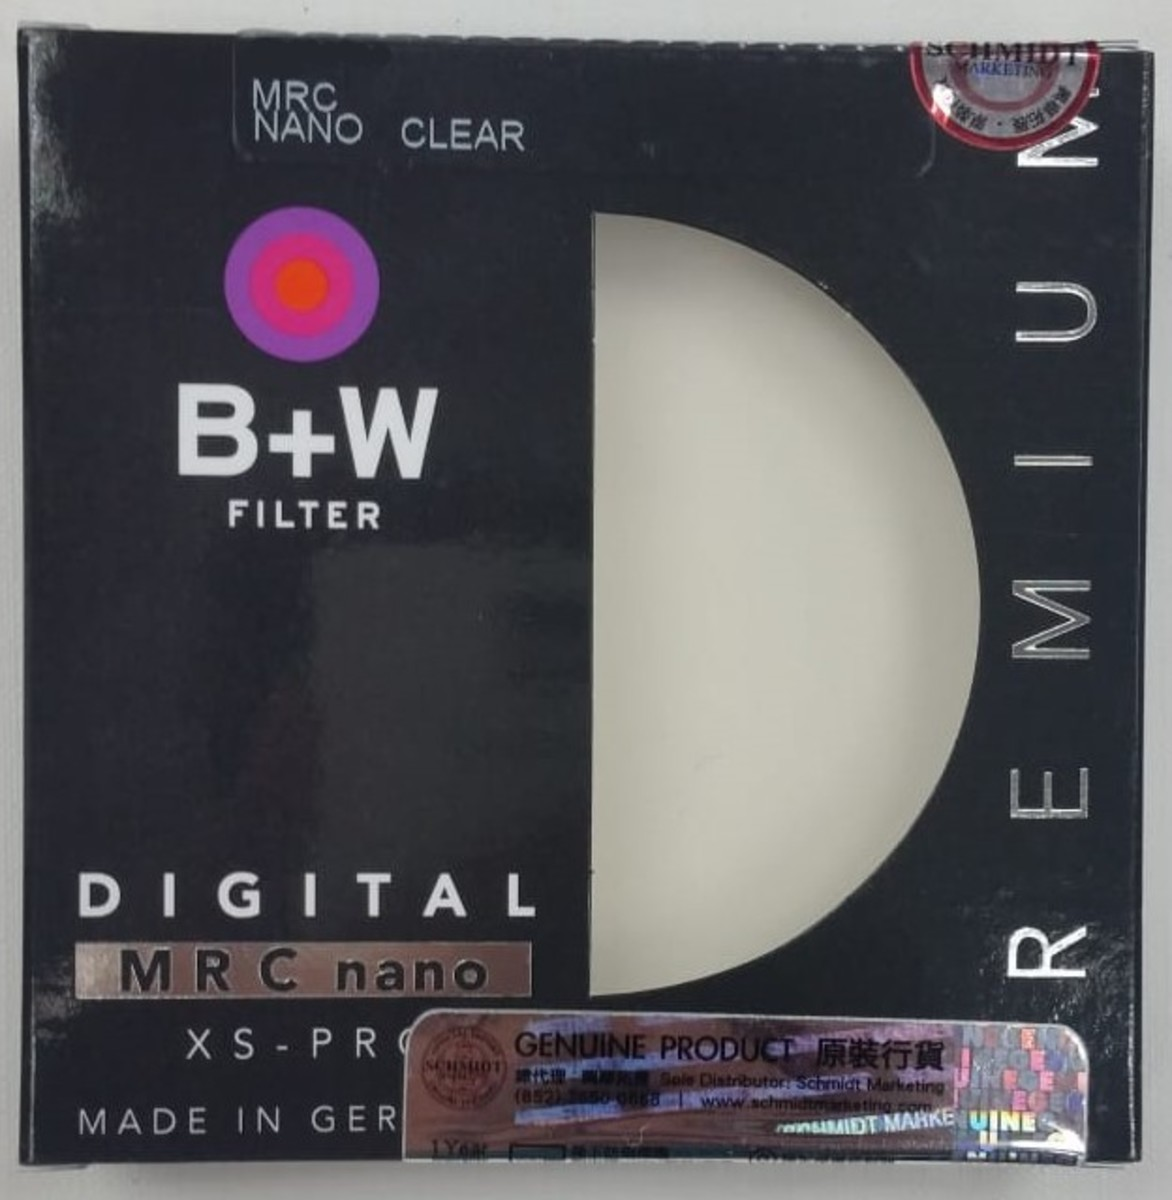 72mm XS-Pro Digital 007 Clear filter MRC nano Protector頂級保護鏡